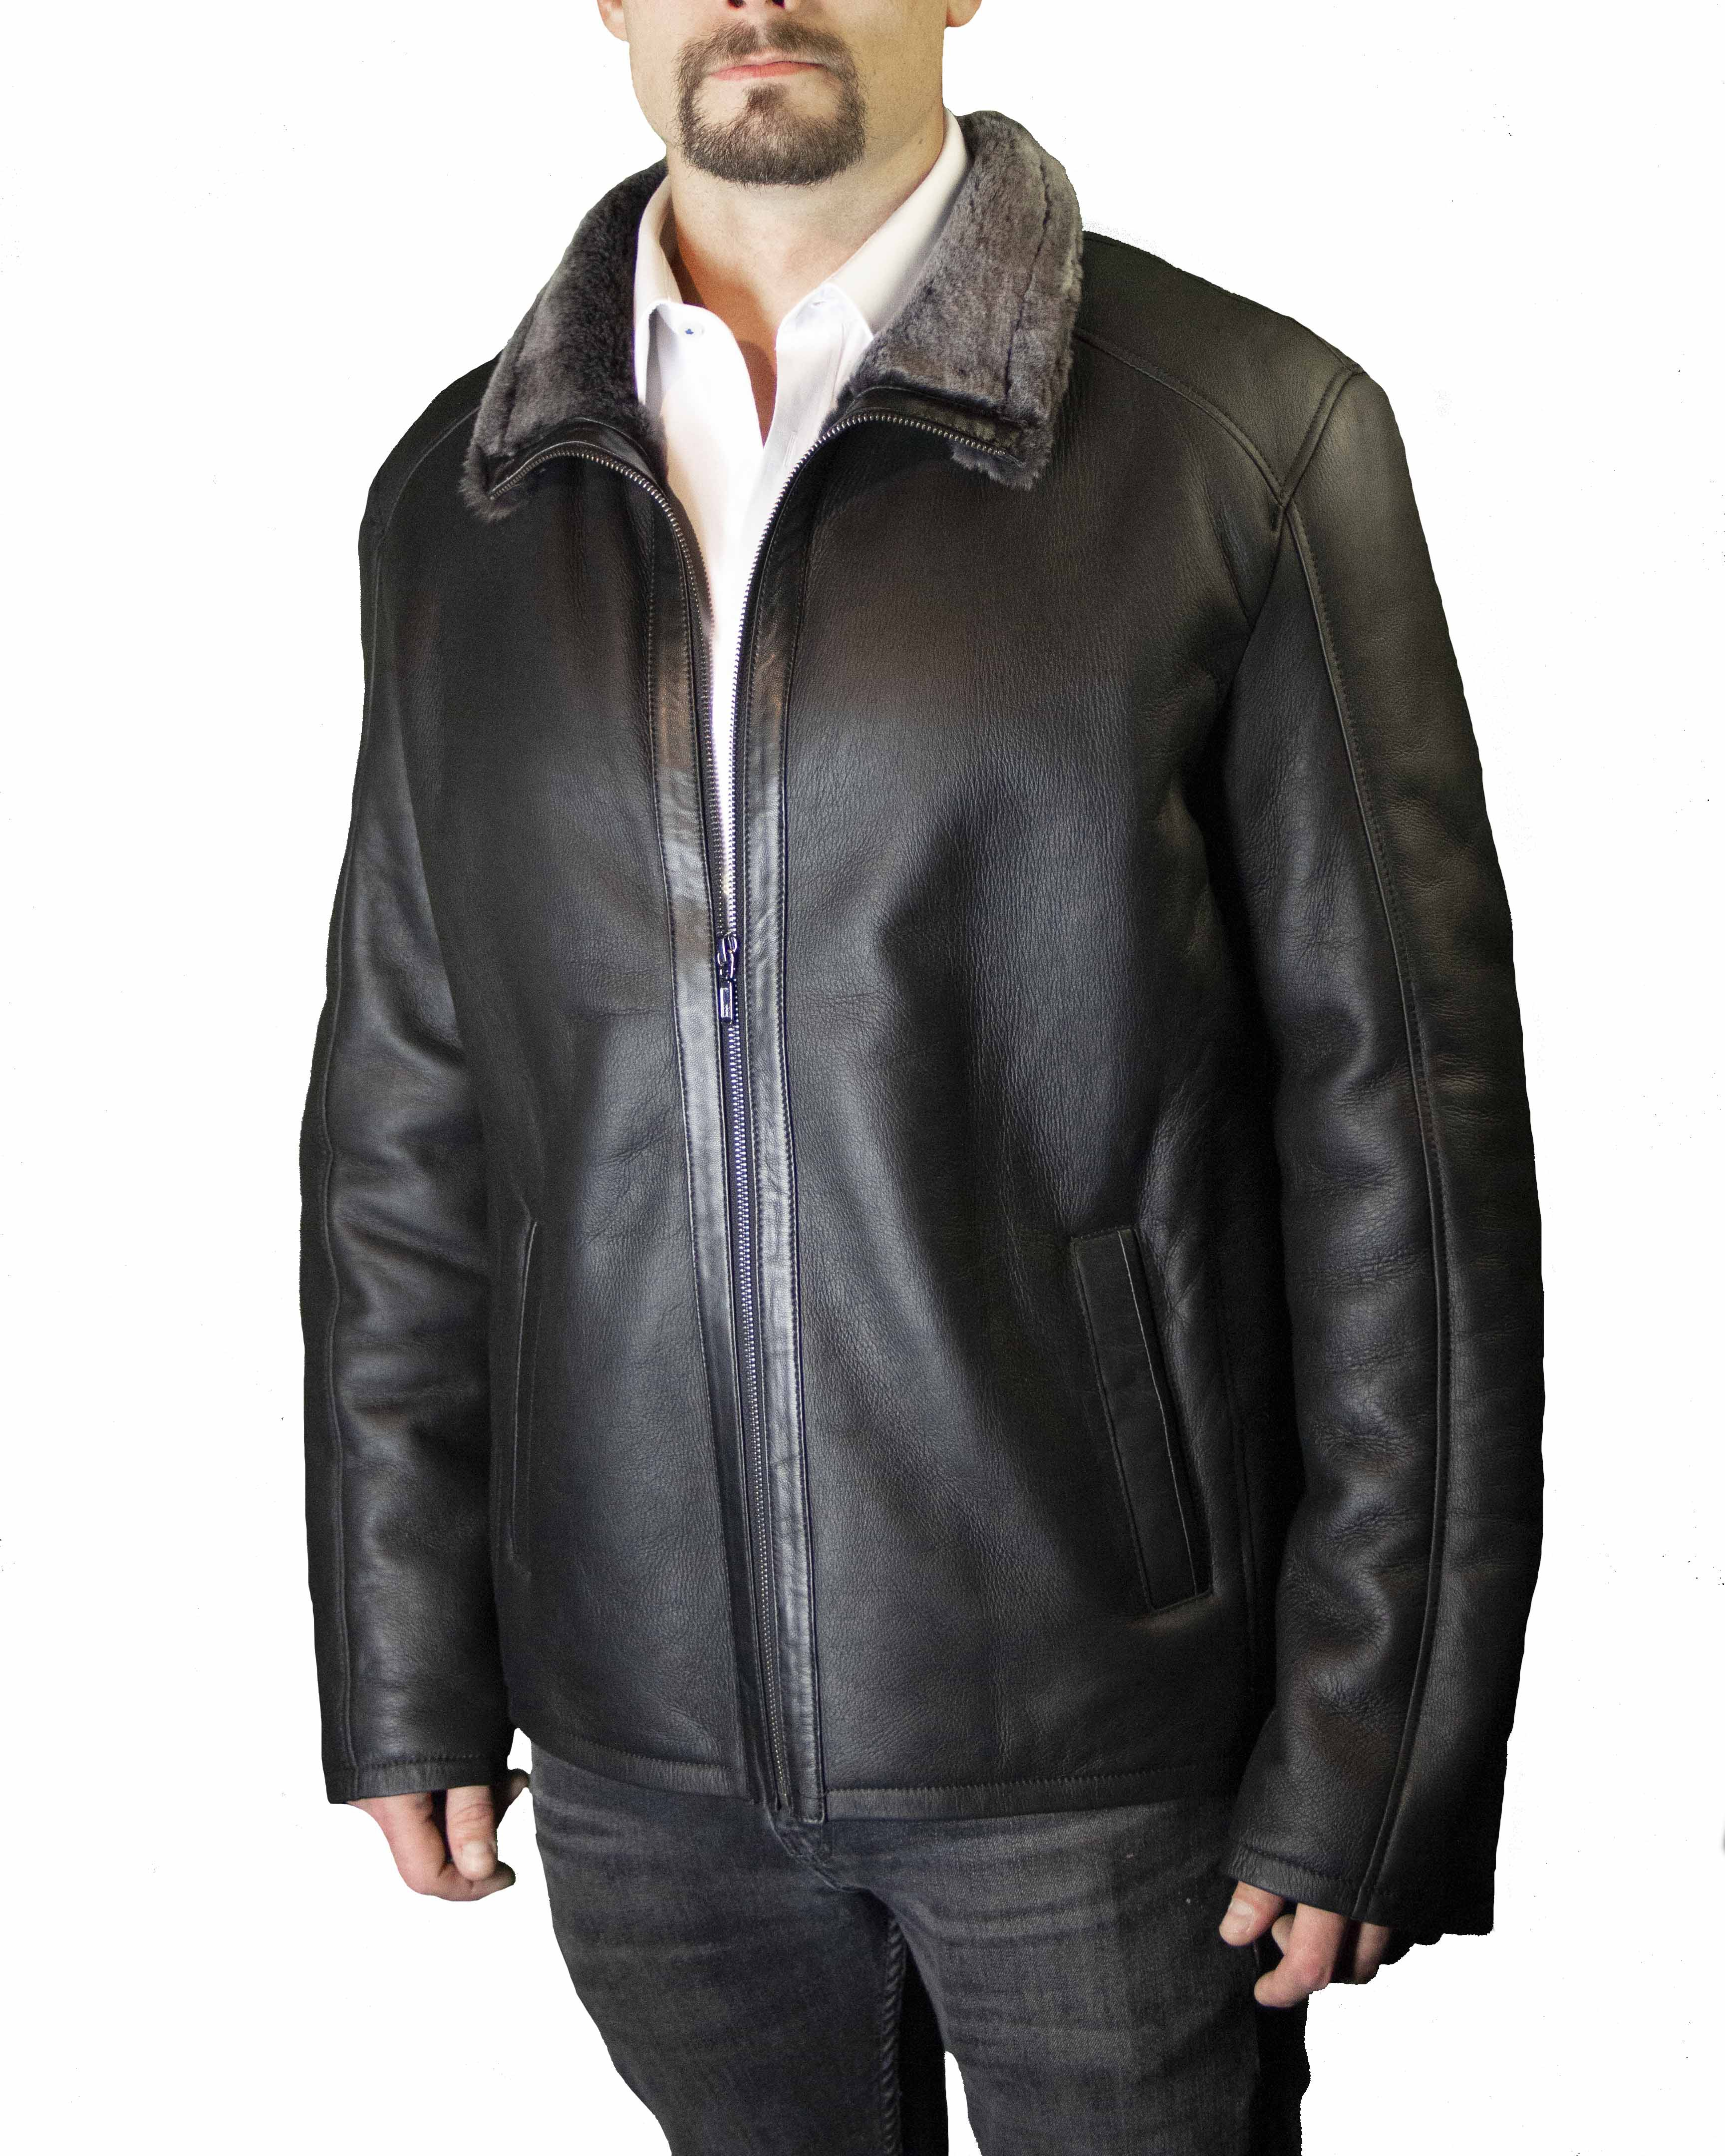 Spanish Merino Lamb Shearling Zipper-Front Jacket B/L 28""